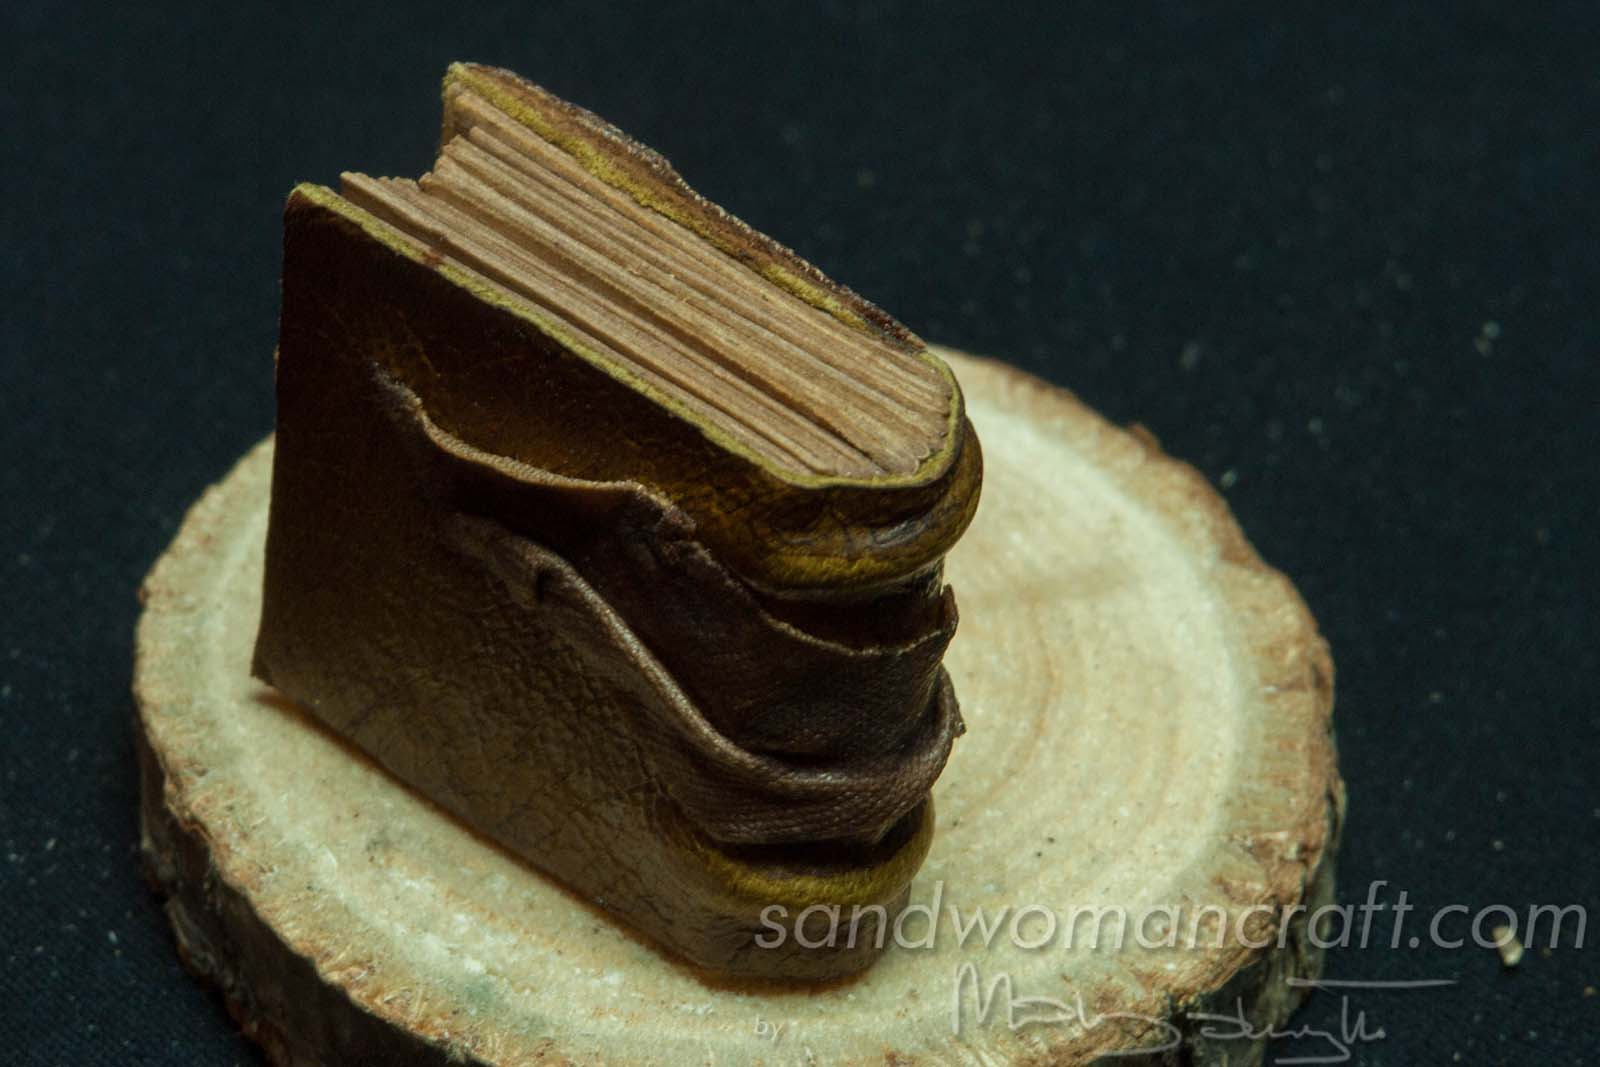 Miniature book with dragon's eye